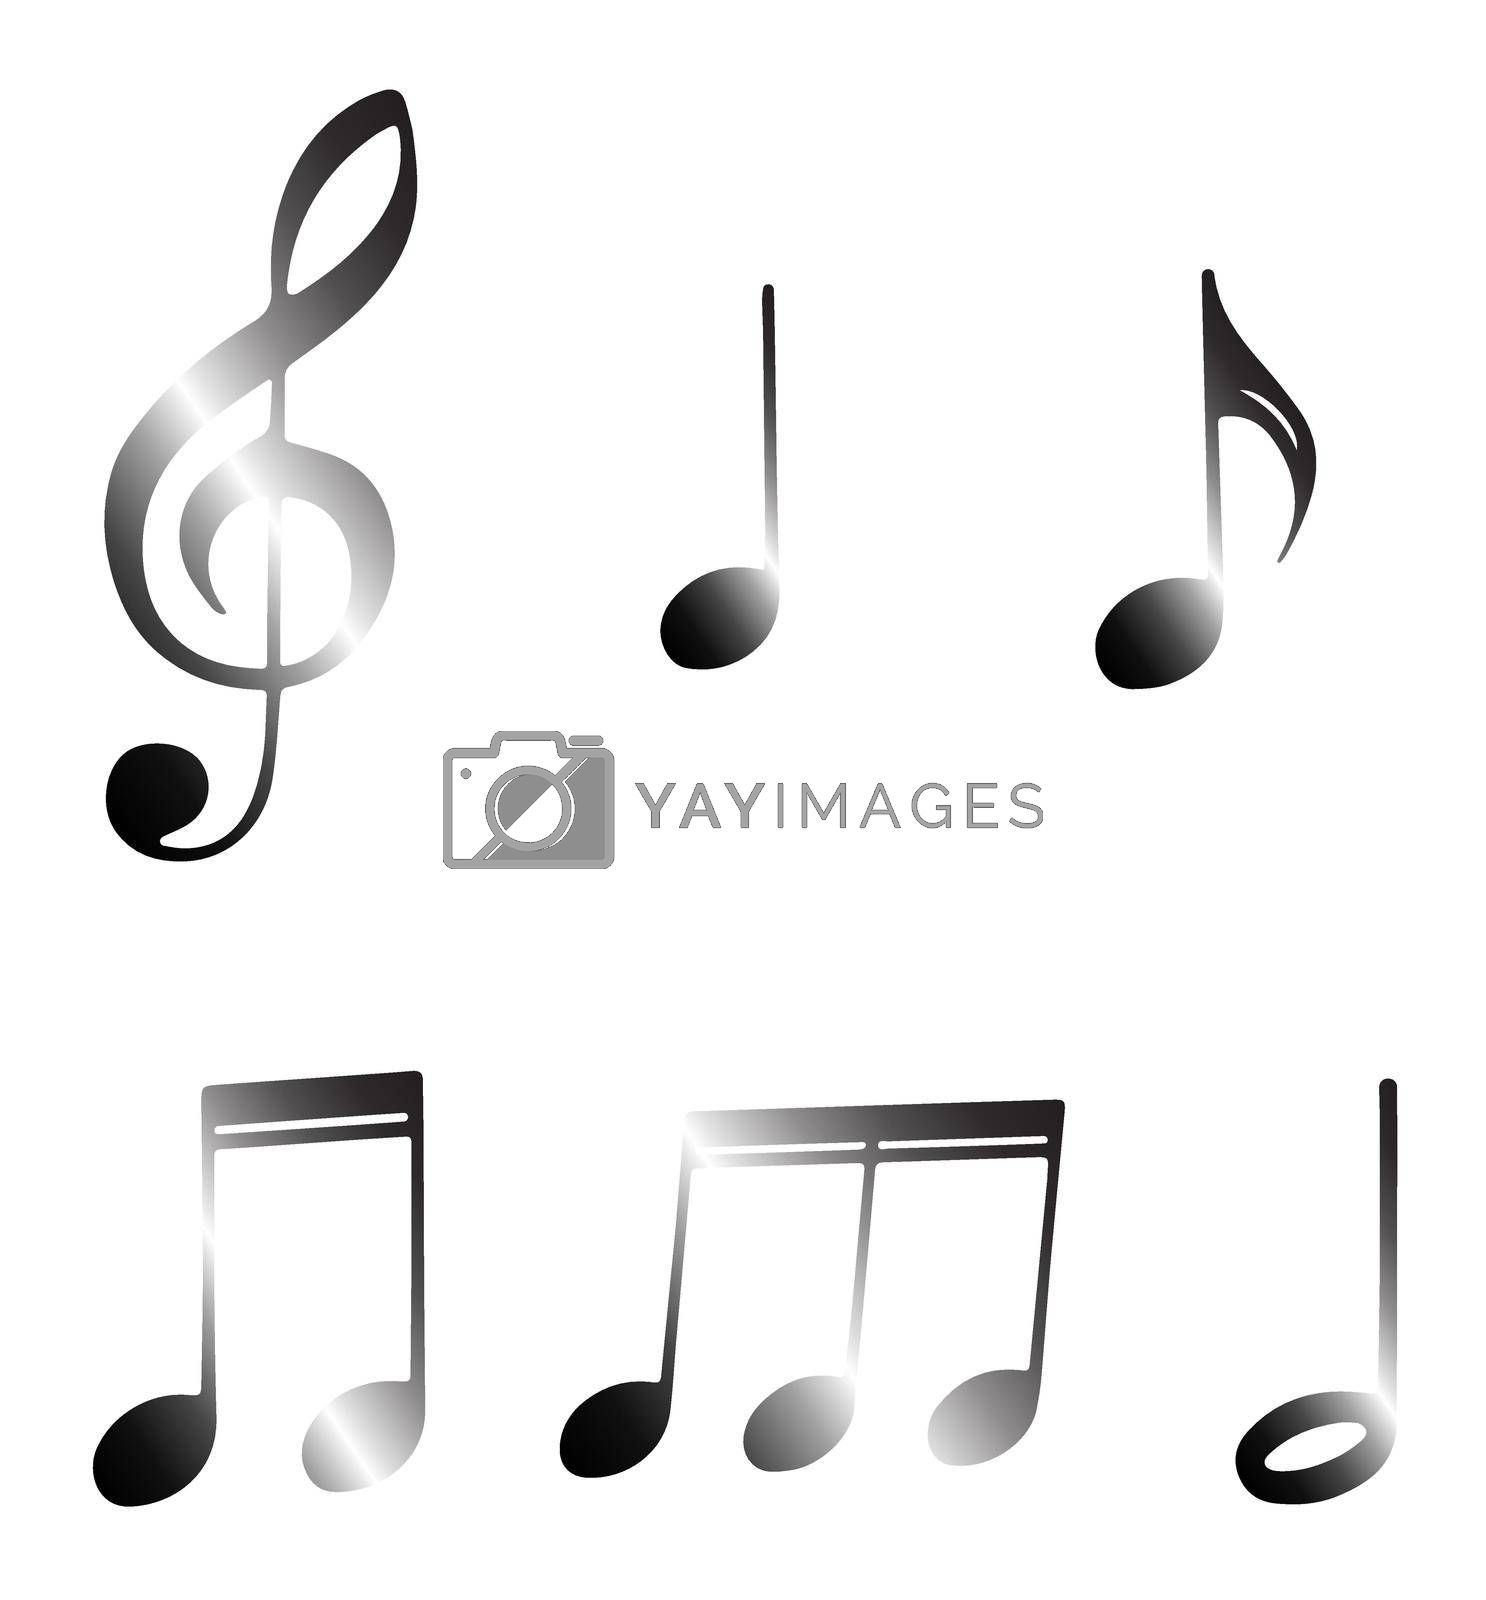 musical notes and signs on a transparent background